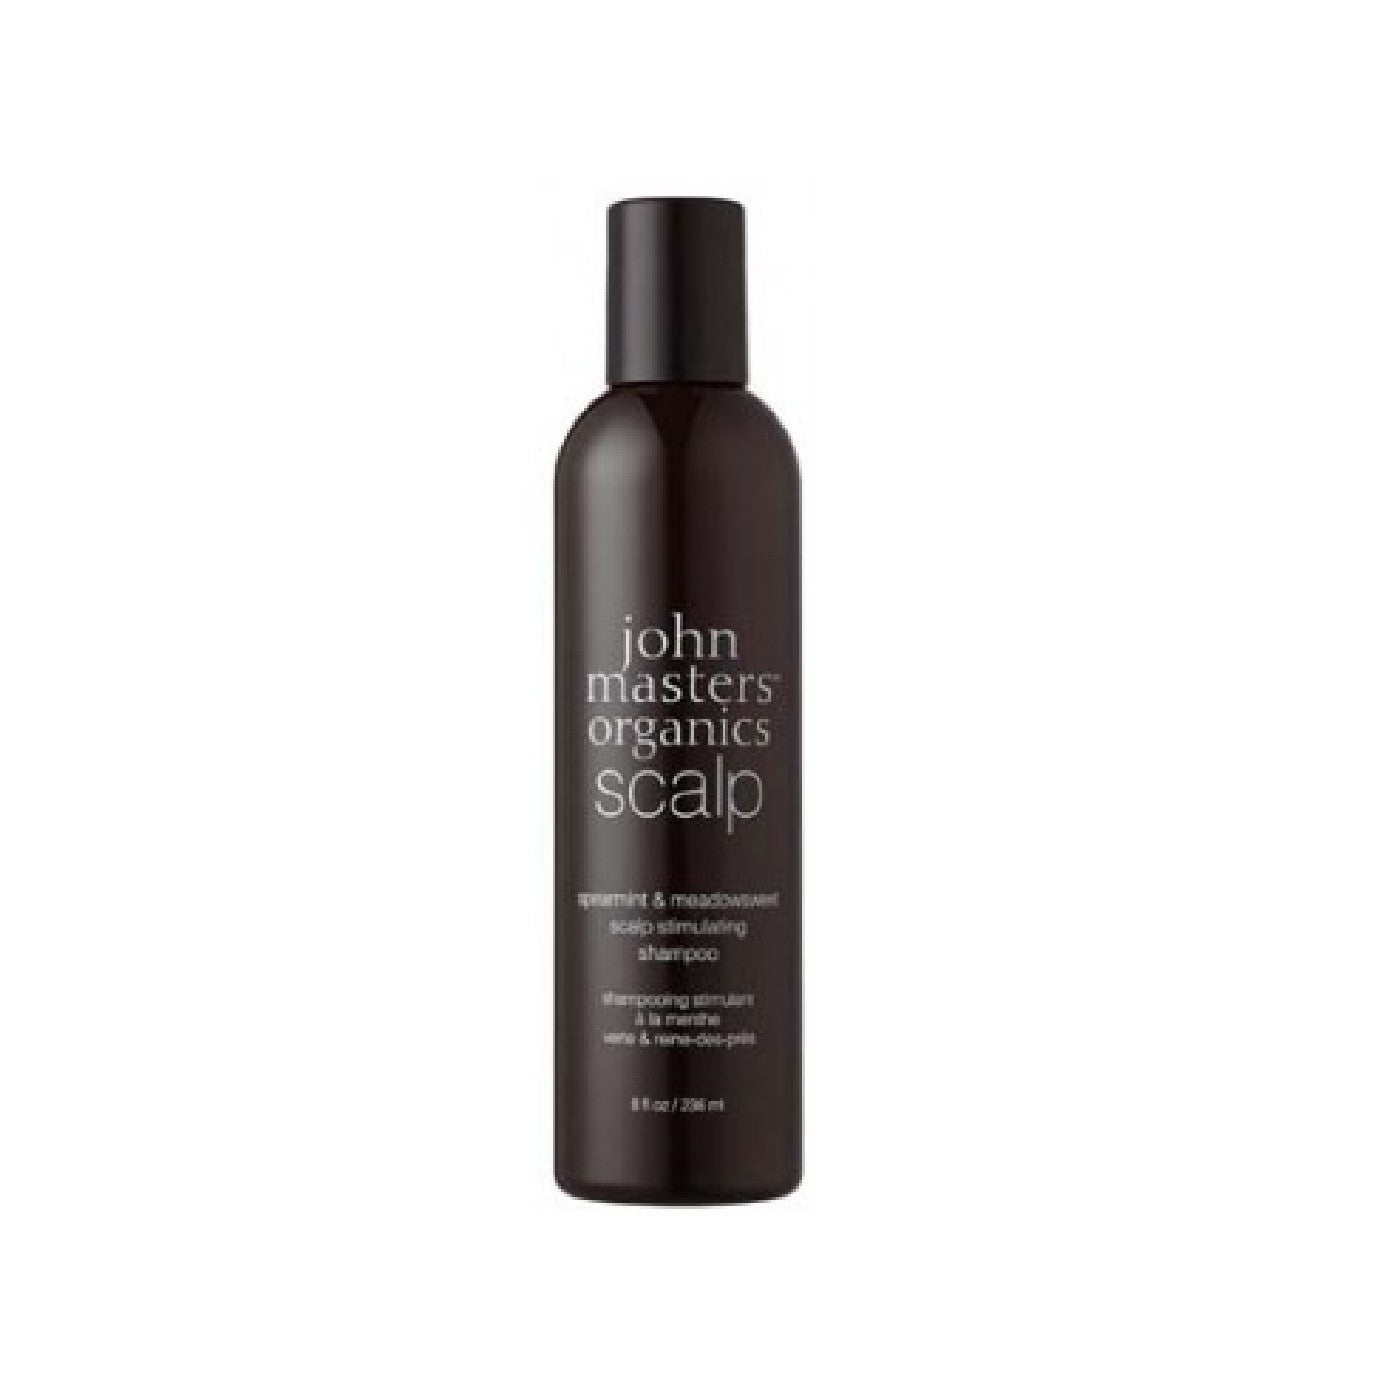 John Masters -Spearmint & Meadosweet Scalp Stimulating Shampoo (Sample Size/10ml )